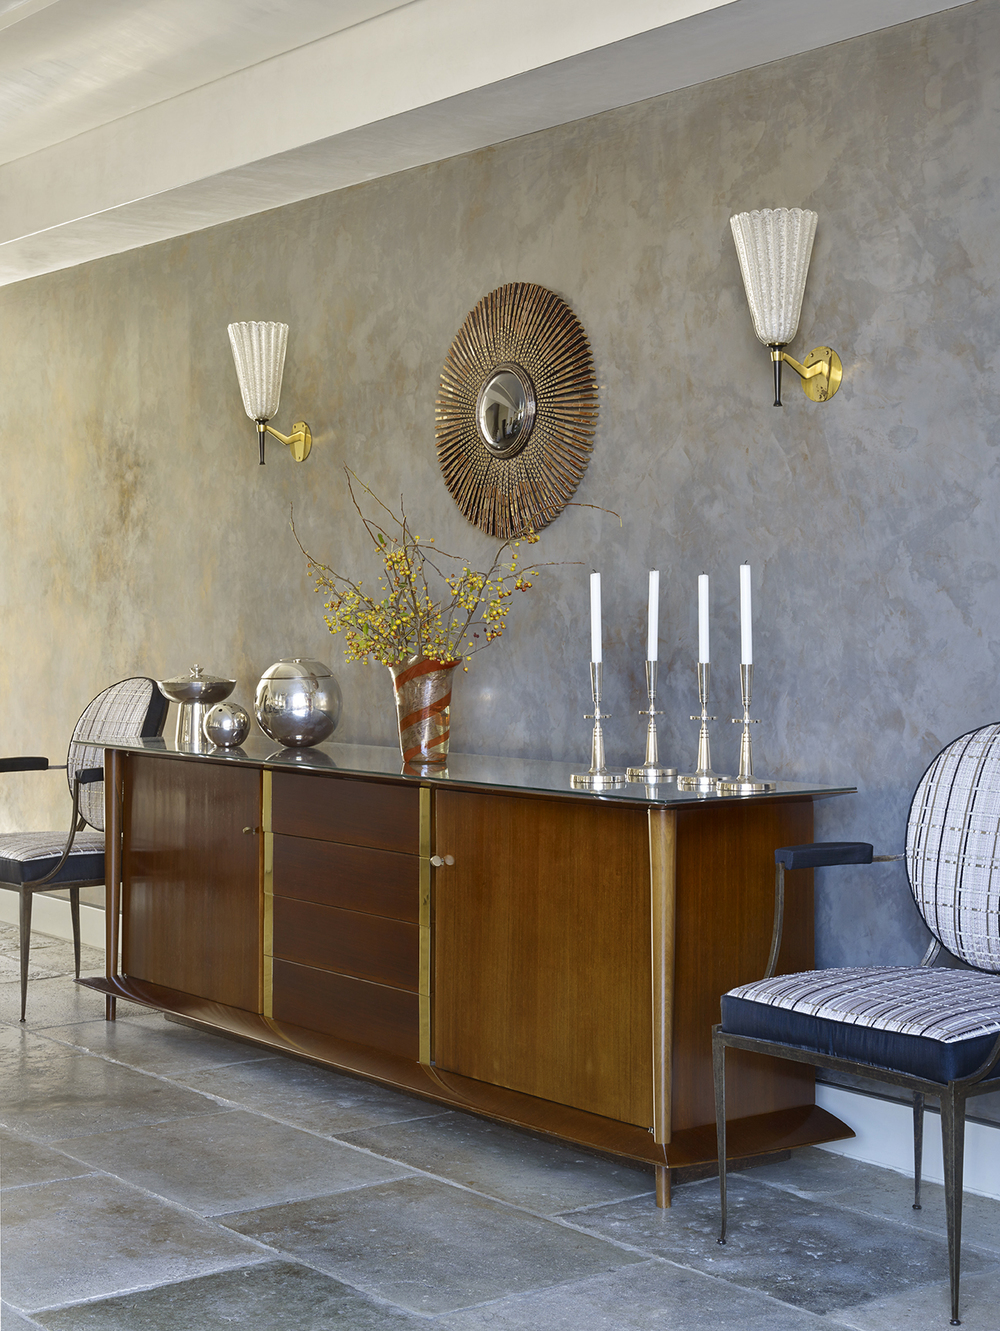 LUXE_121 W21_Dining Room_3_Sideboard_photo Peter Murdock.jpg